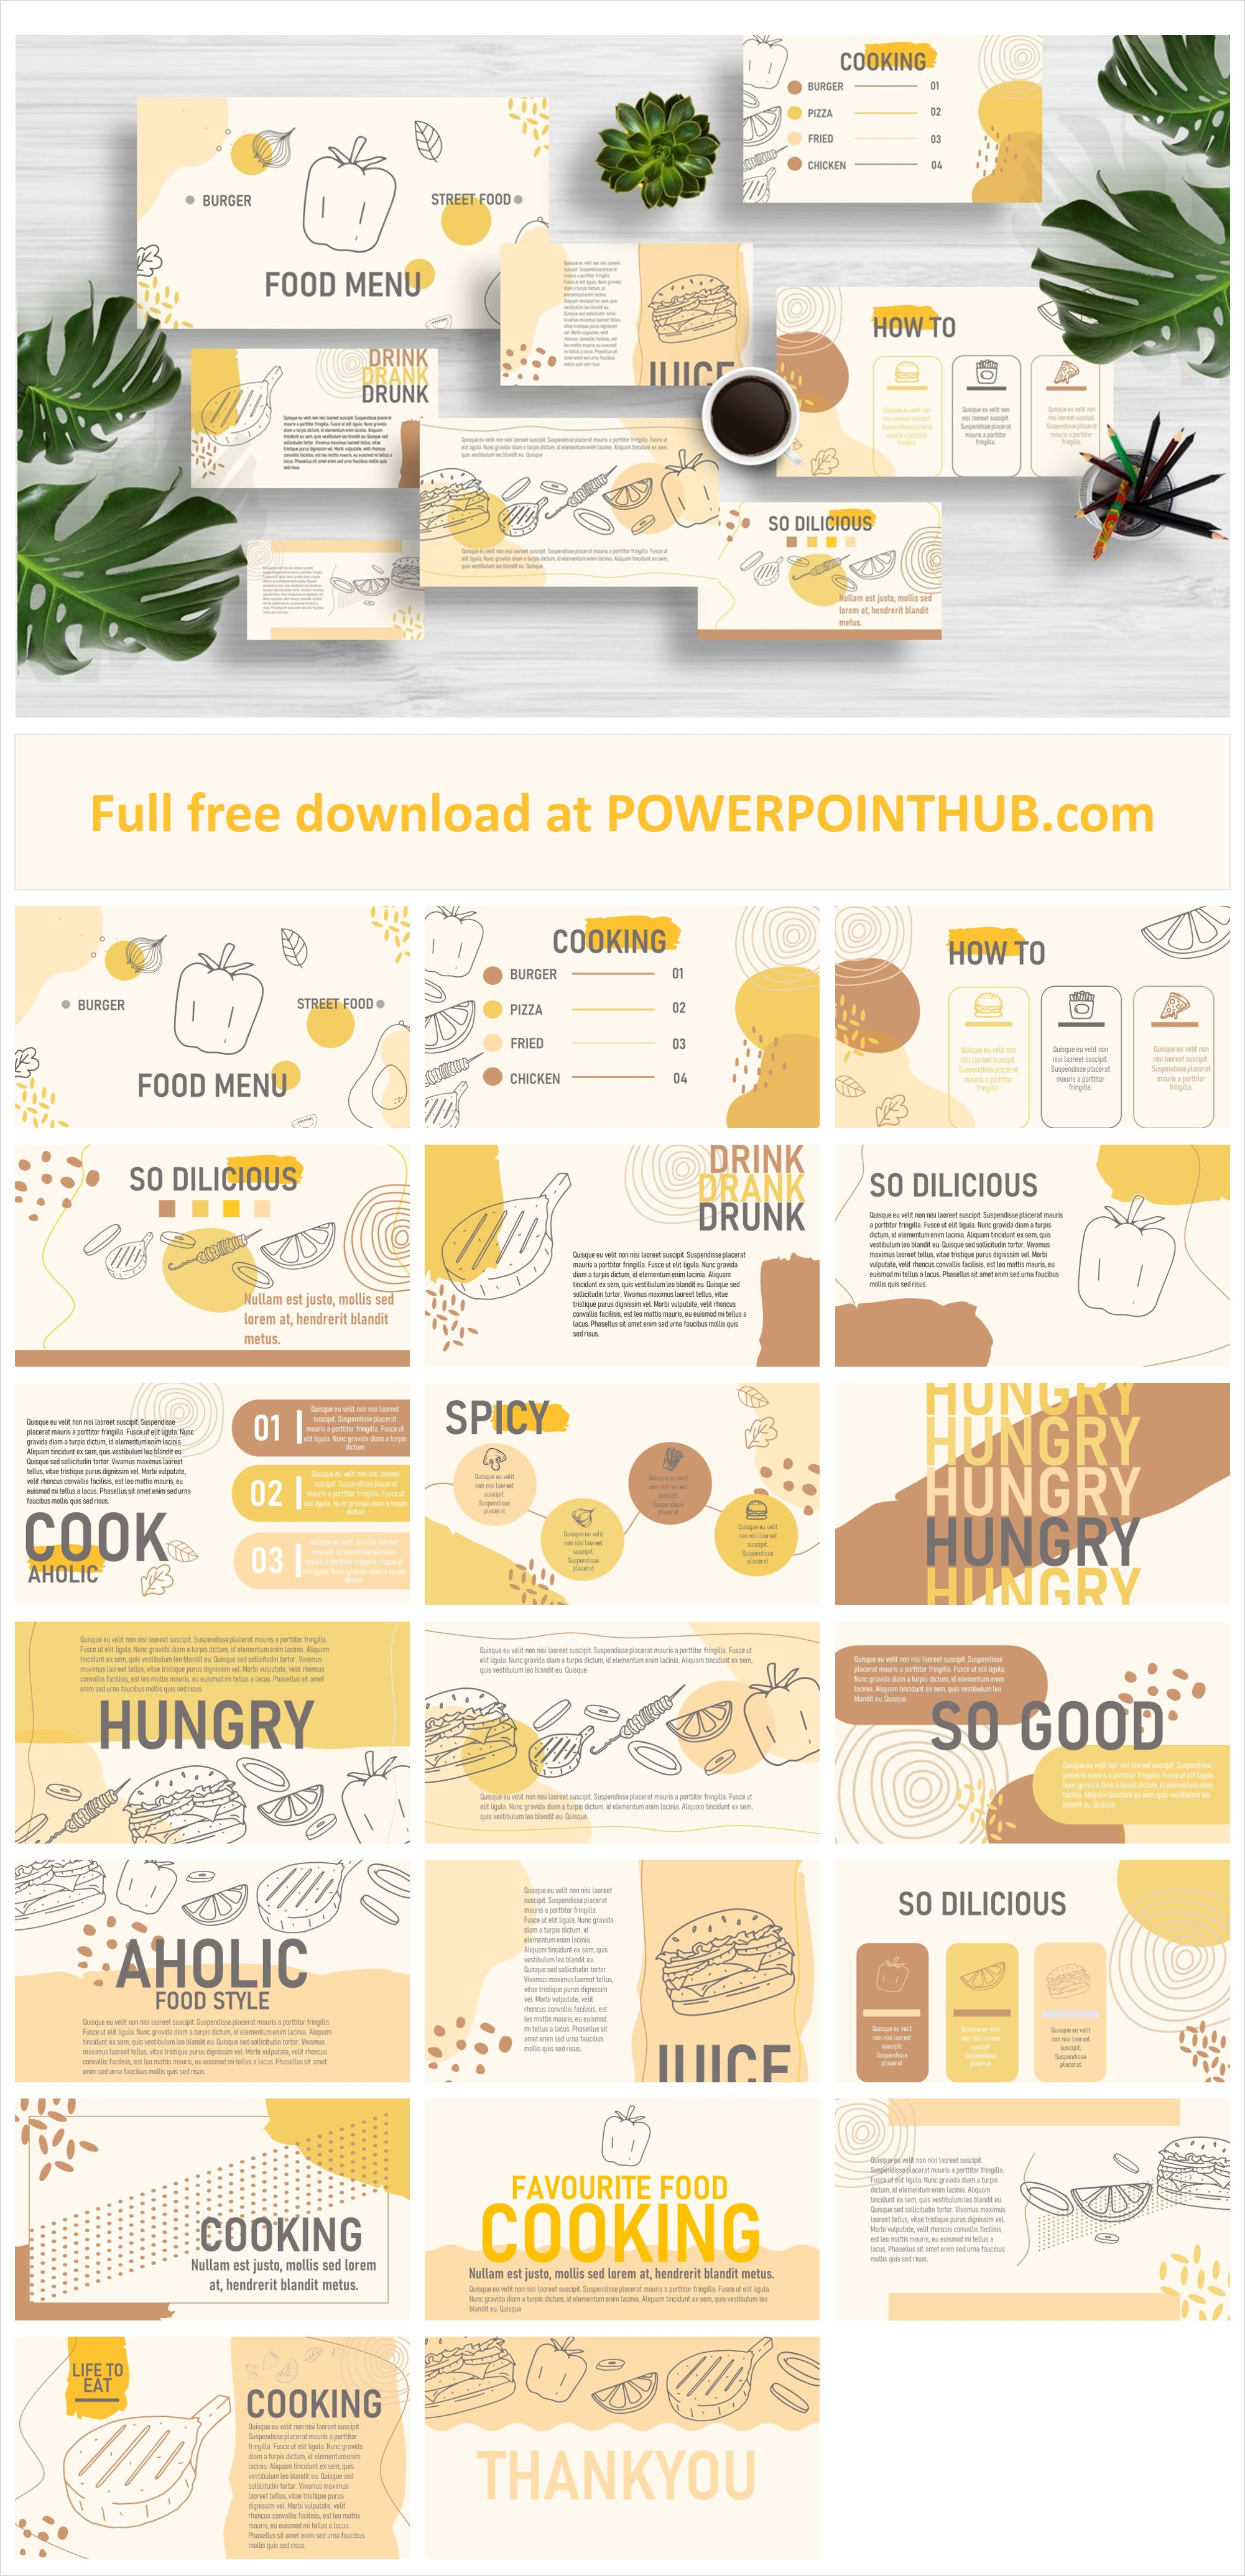 Free powerpoint template related to food , drink and cooking. Use these Food Menu for your best presentation.